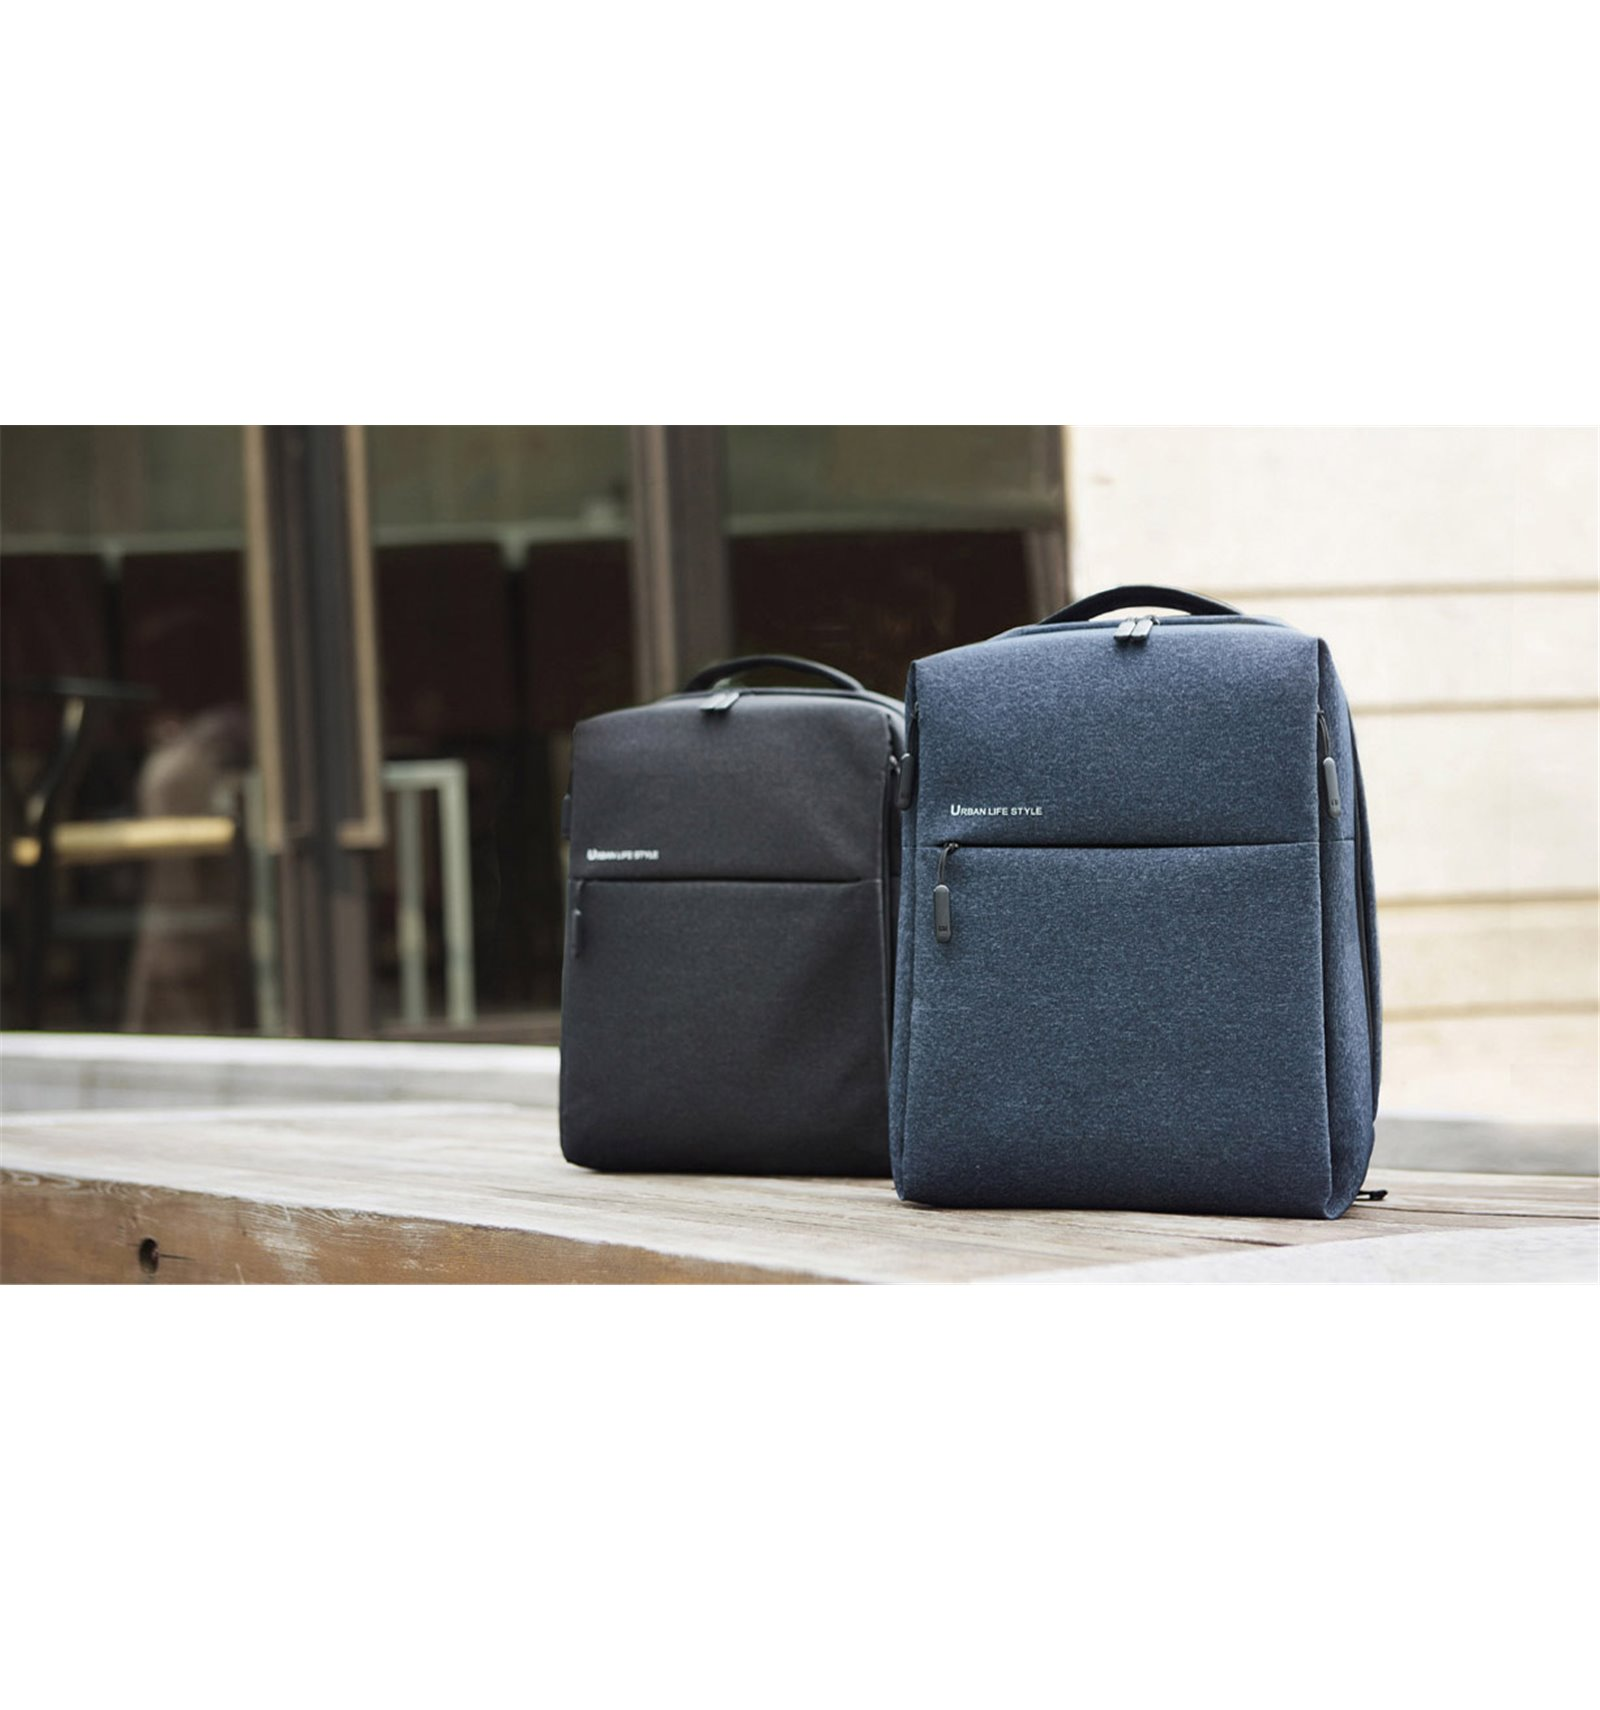 Xiaomi mi minimalist urban backpack for Urban minimalist house